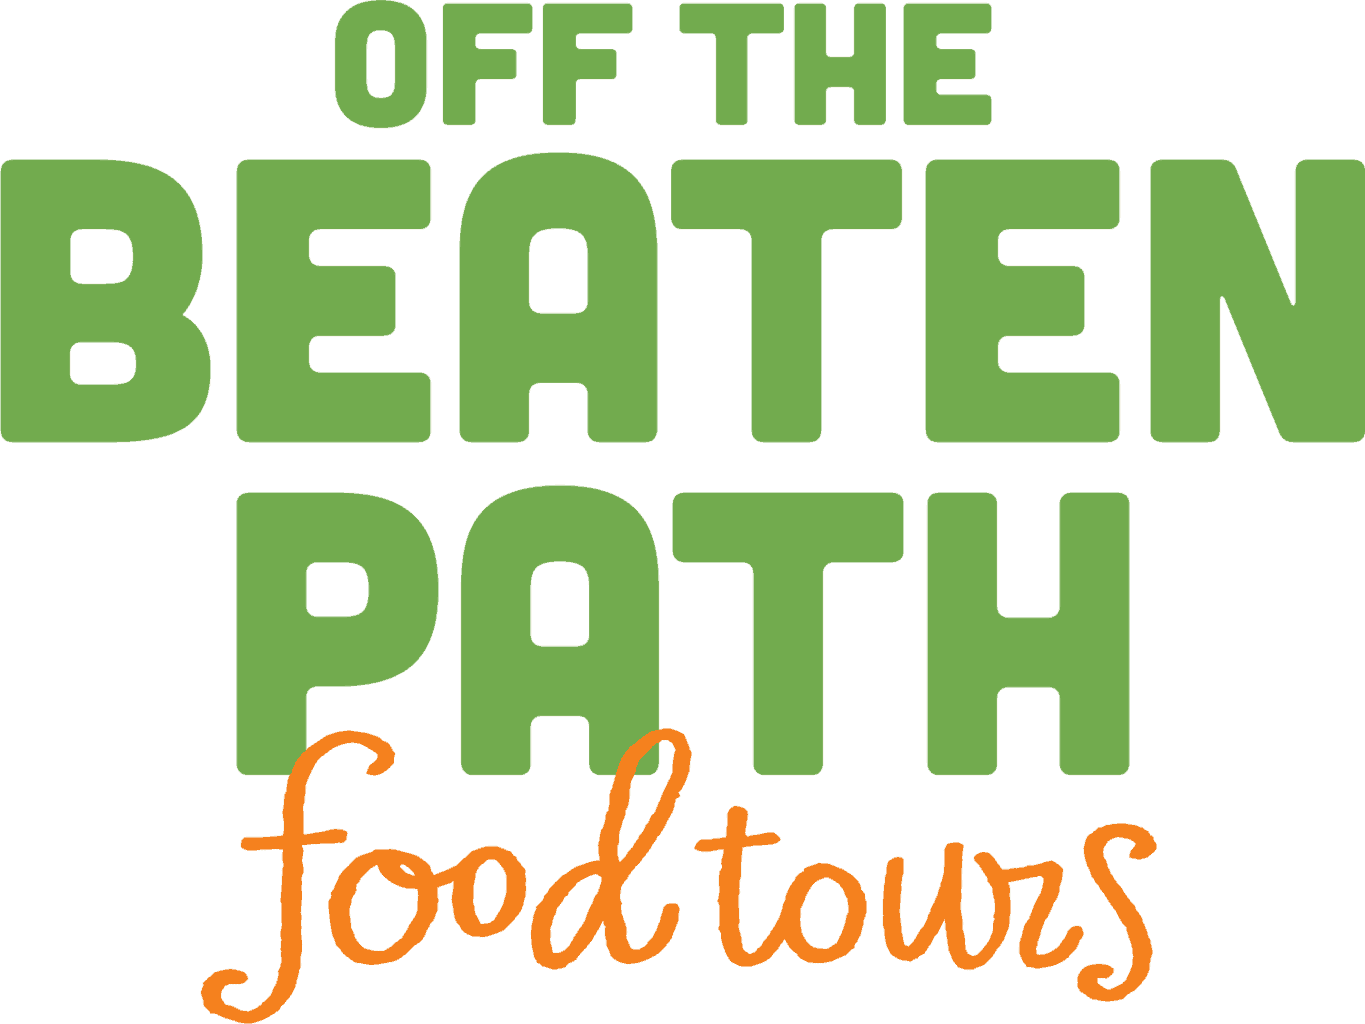 Off the Beaten Path Food Tours logo.